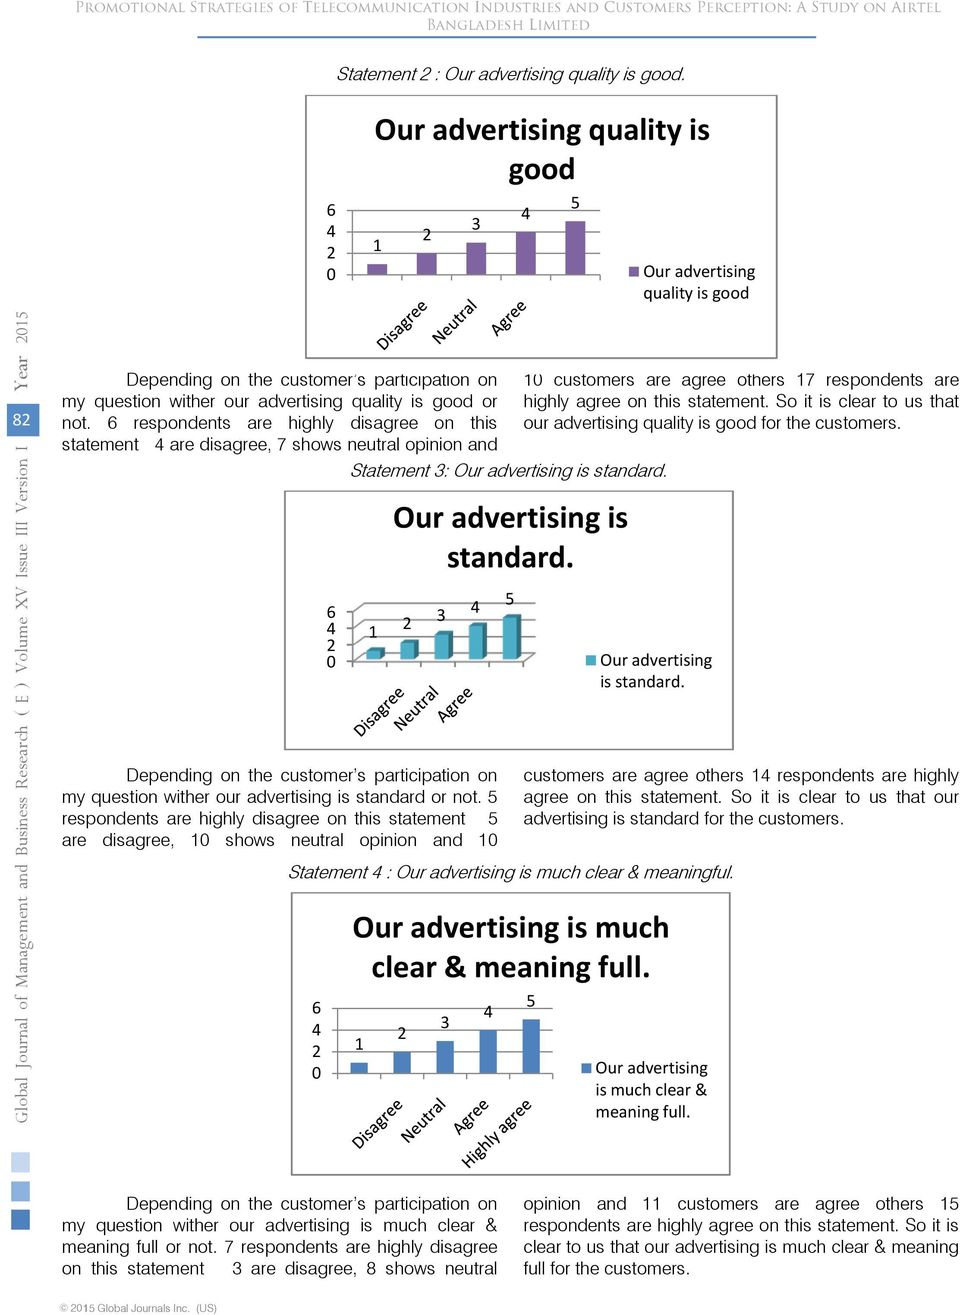 respondents are highly disagree on this statement are disagree, shows neutral opinion and Statement : Our advertising is standard. Our advertising is standard. Statement : Our advertising is much clear & meaningful.